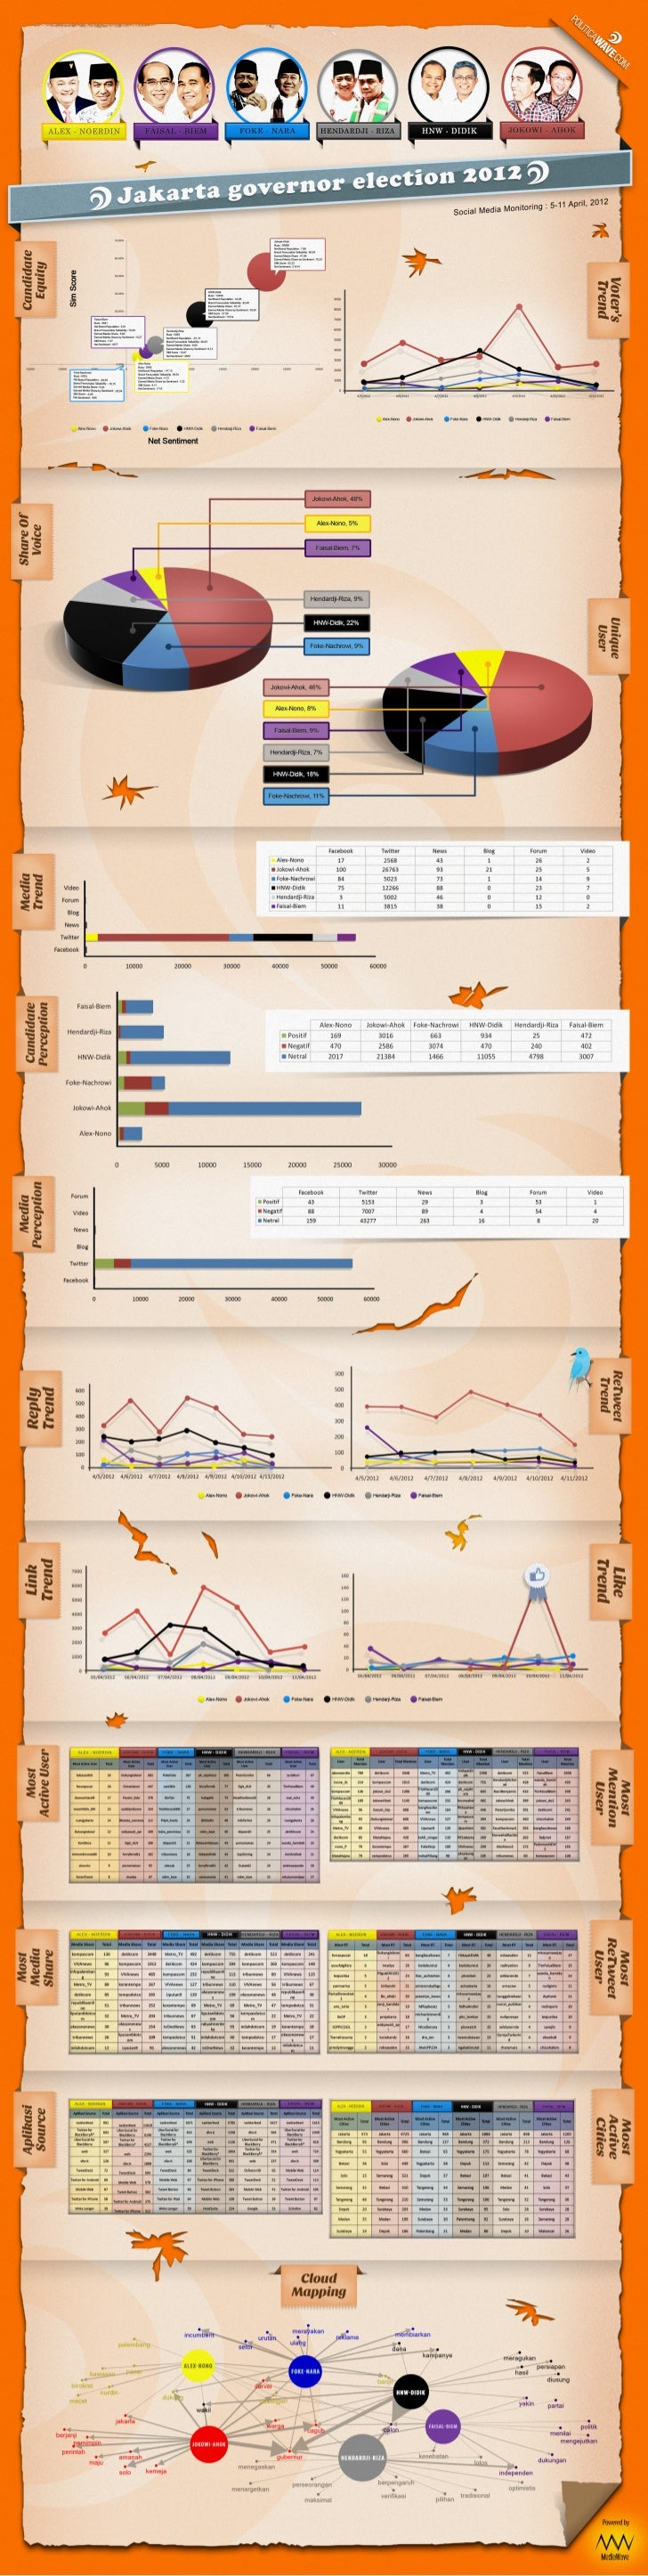 2012 Jakarta Governor Election - Social Media Analysis Period 5-11 April 2012 [Infographic]